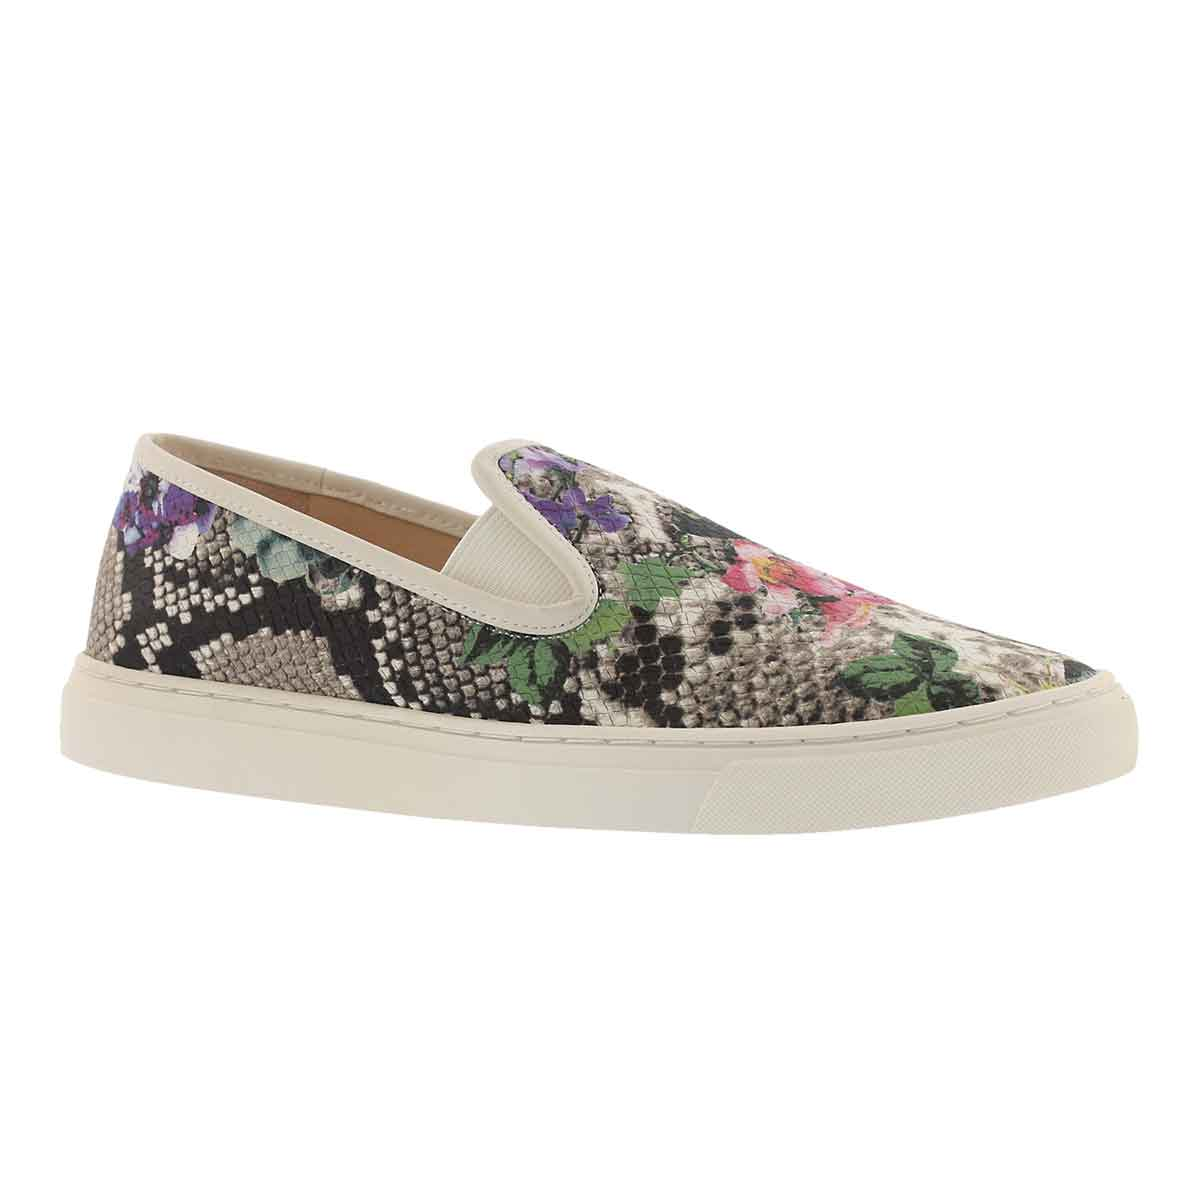 Women's BECKER multi colour casual slip on shoe